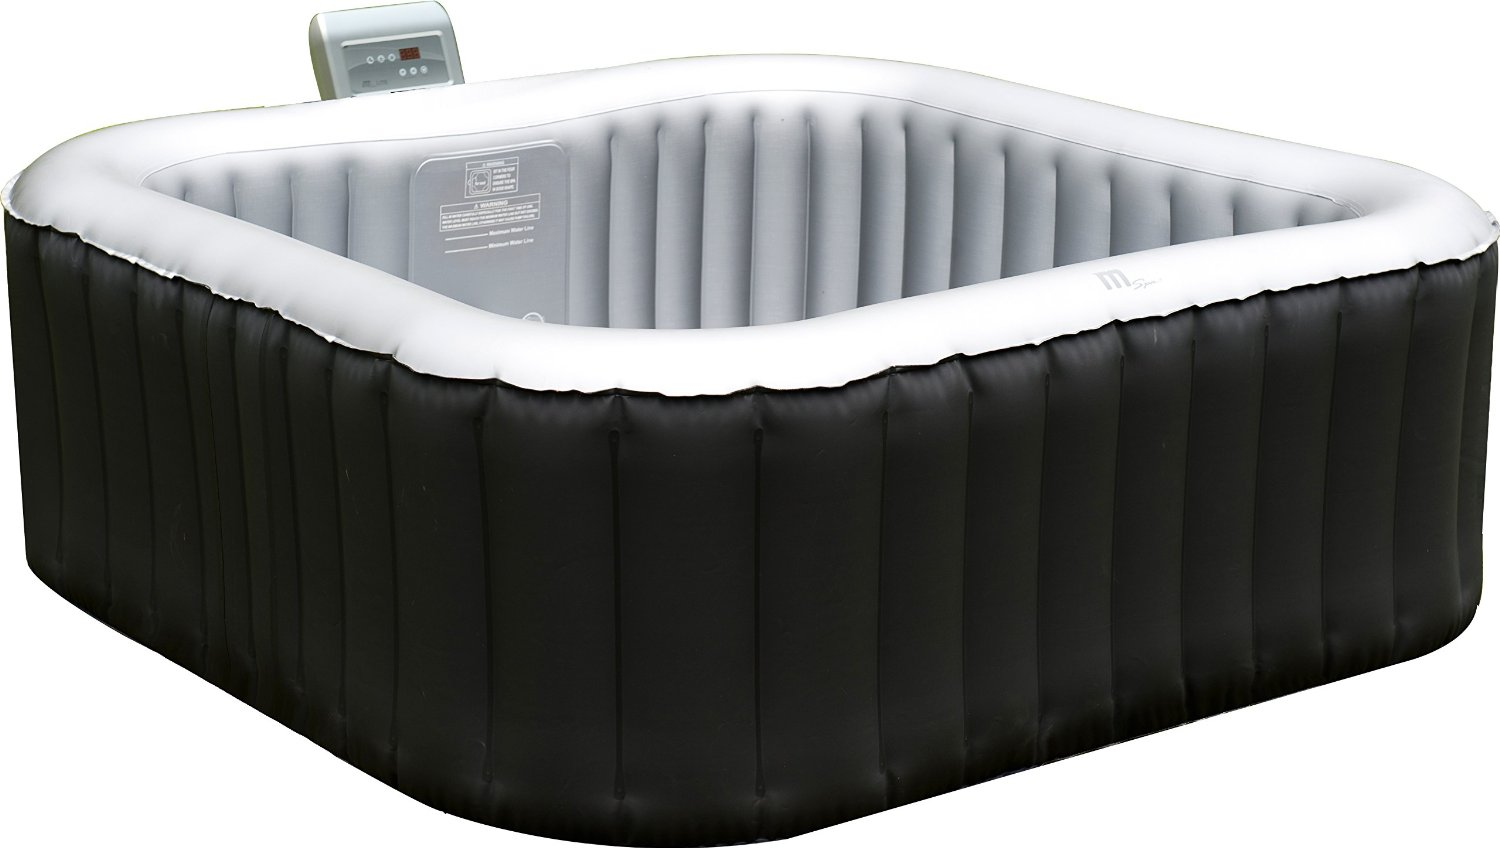 Jacuzzi Pool Aufblasbar Mspa Alpine Inflatable Hot Tub Review Inflatable Hot Tub